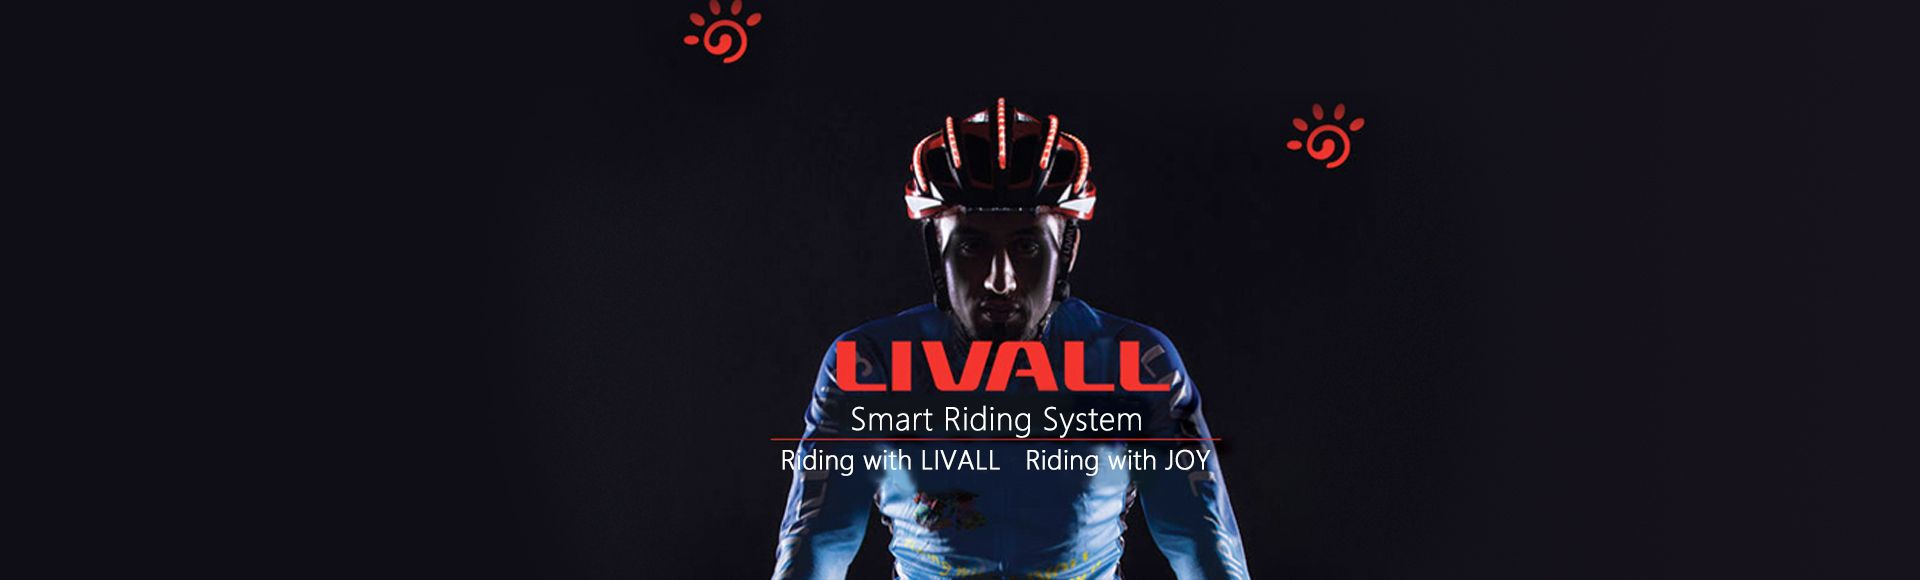 LIVALL Smart Riding System - Multi-function Cycling Smart Mountain Bike Helmet Bling Jet Phone Holder Nano Cadence Sensor